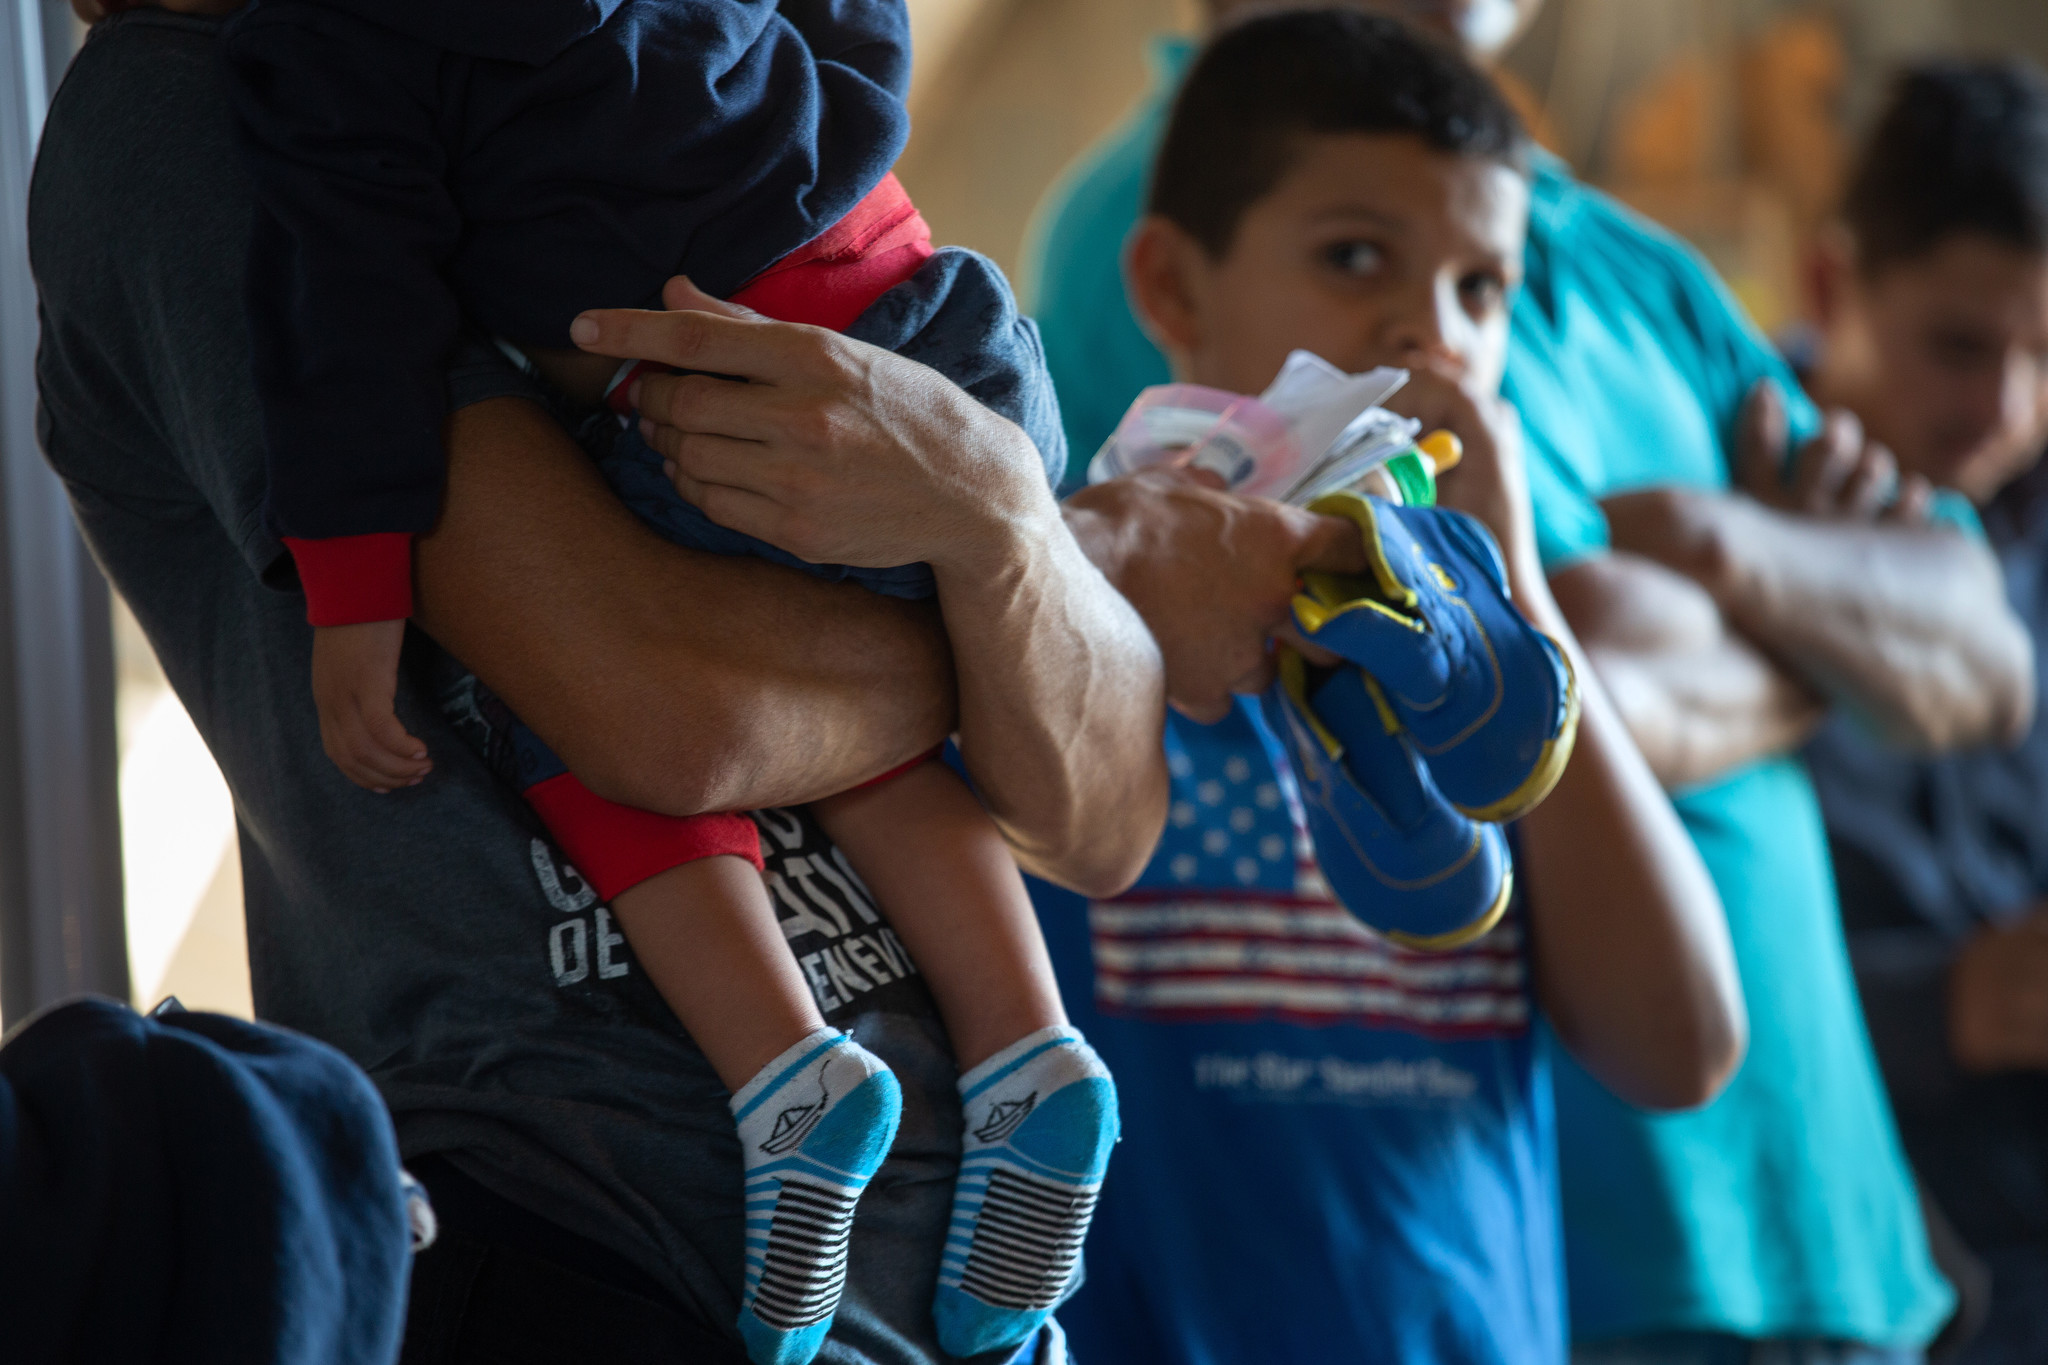 Congressional Hispanic Caucus marks anniversary of death of migrant kids with request for flu shots